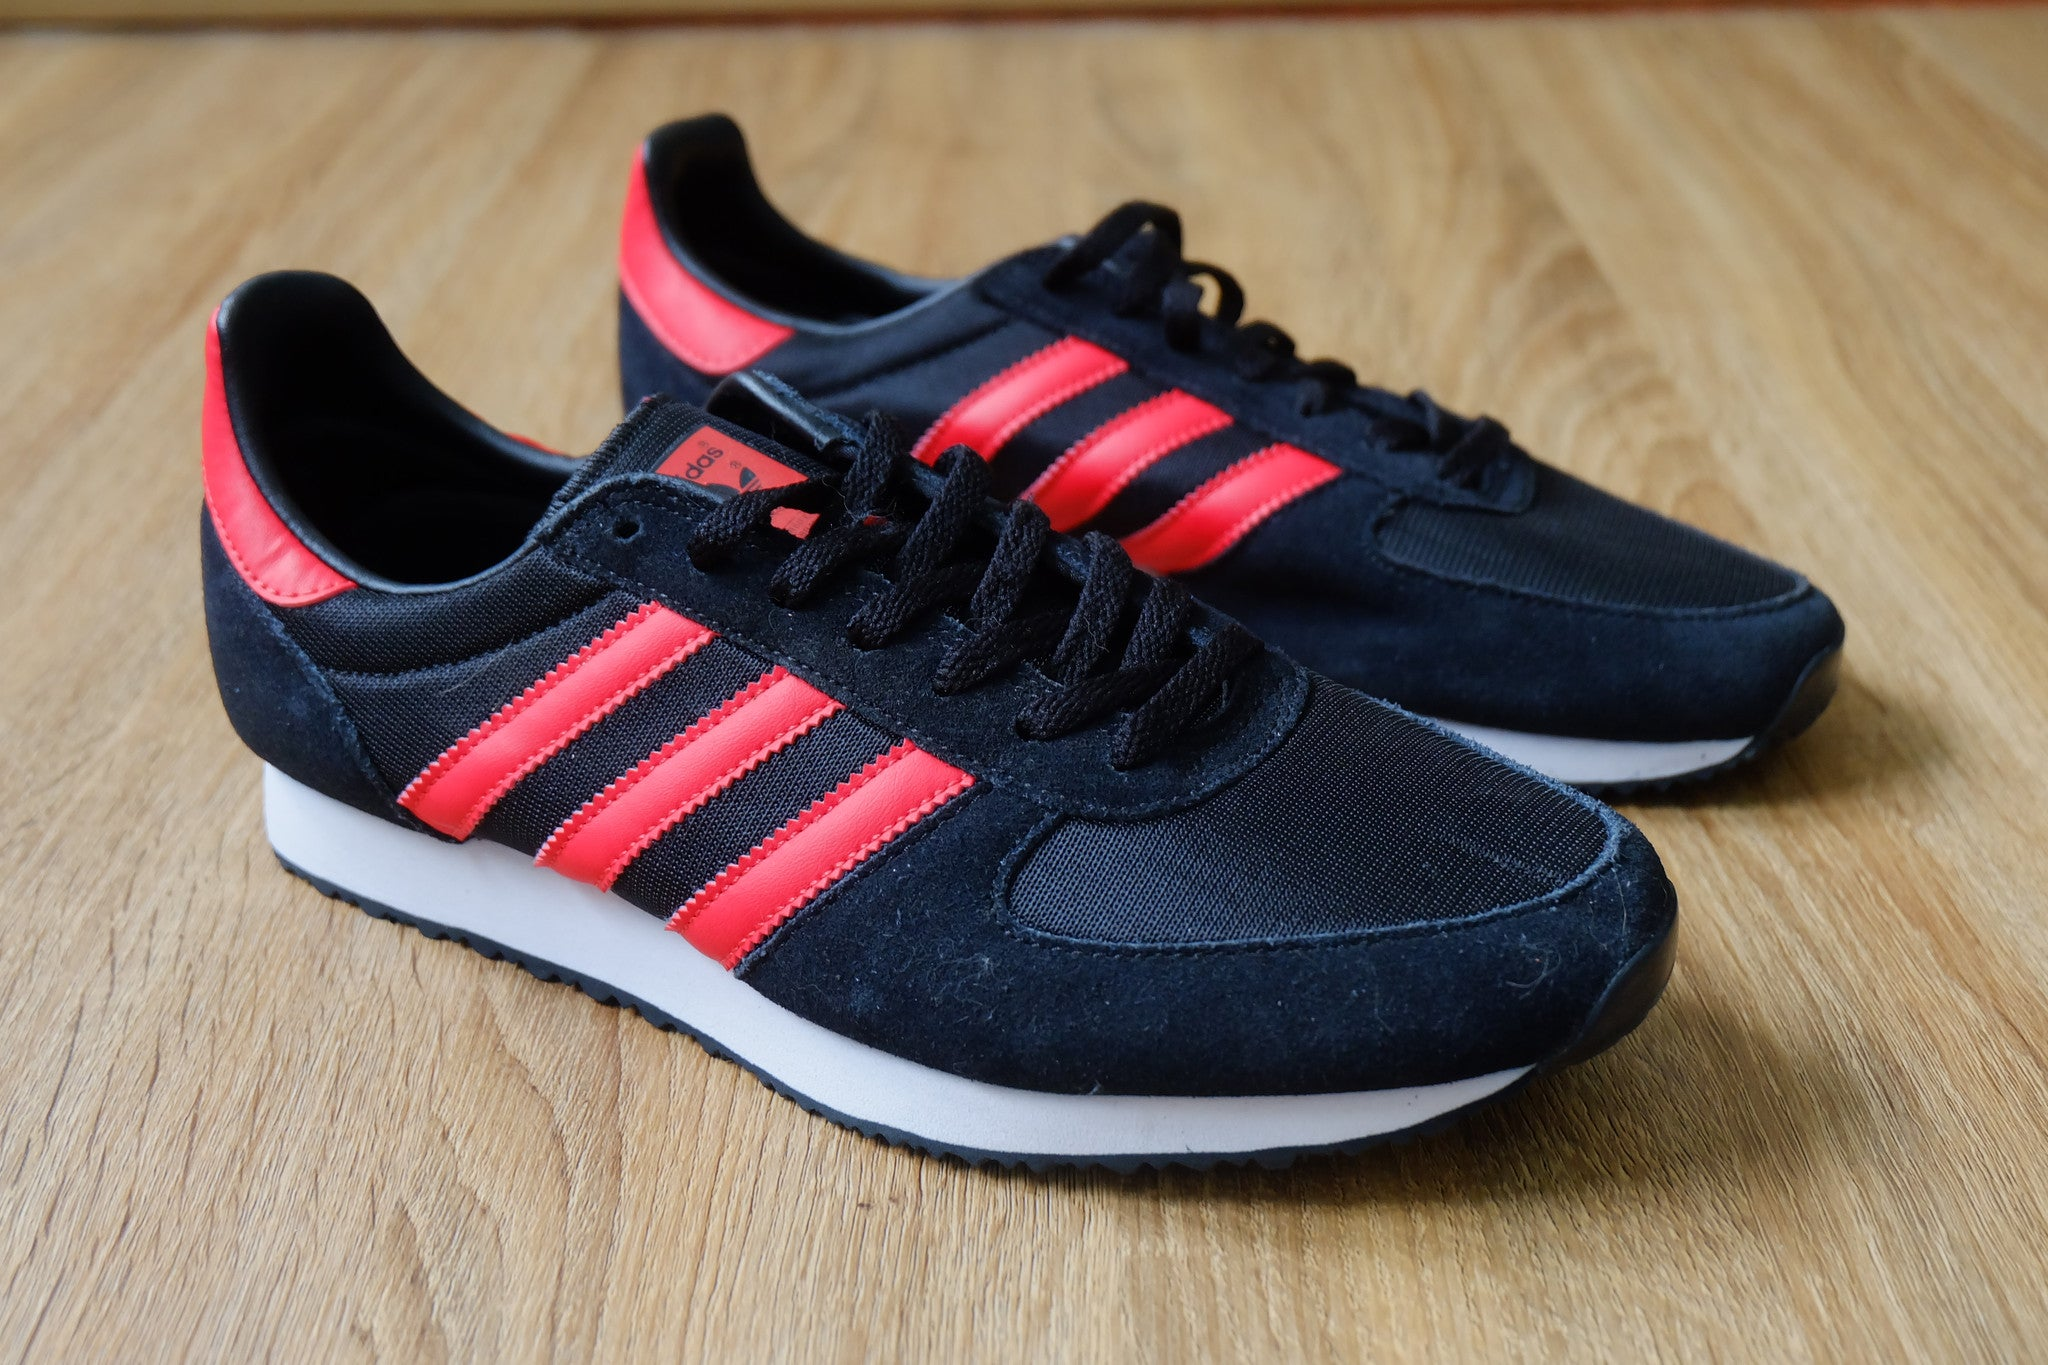 Adidas ZX Racer Black Red || (40, 40 2/3)